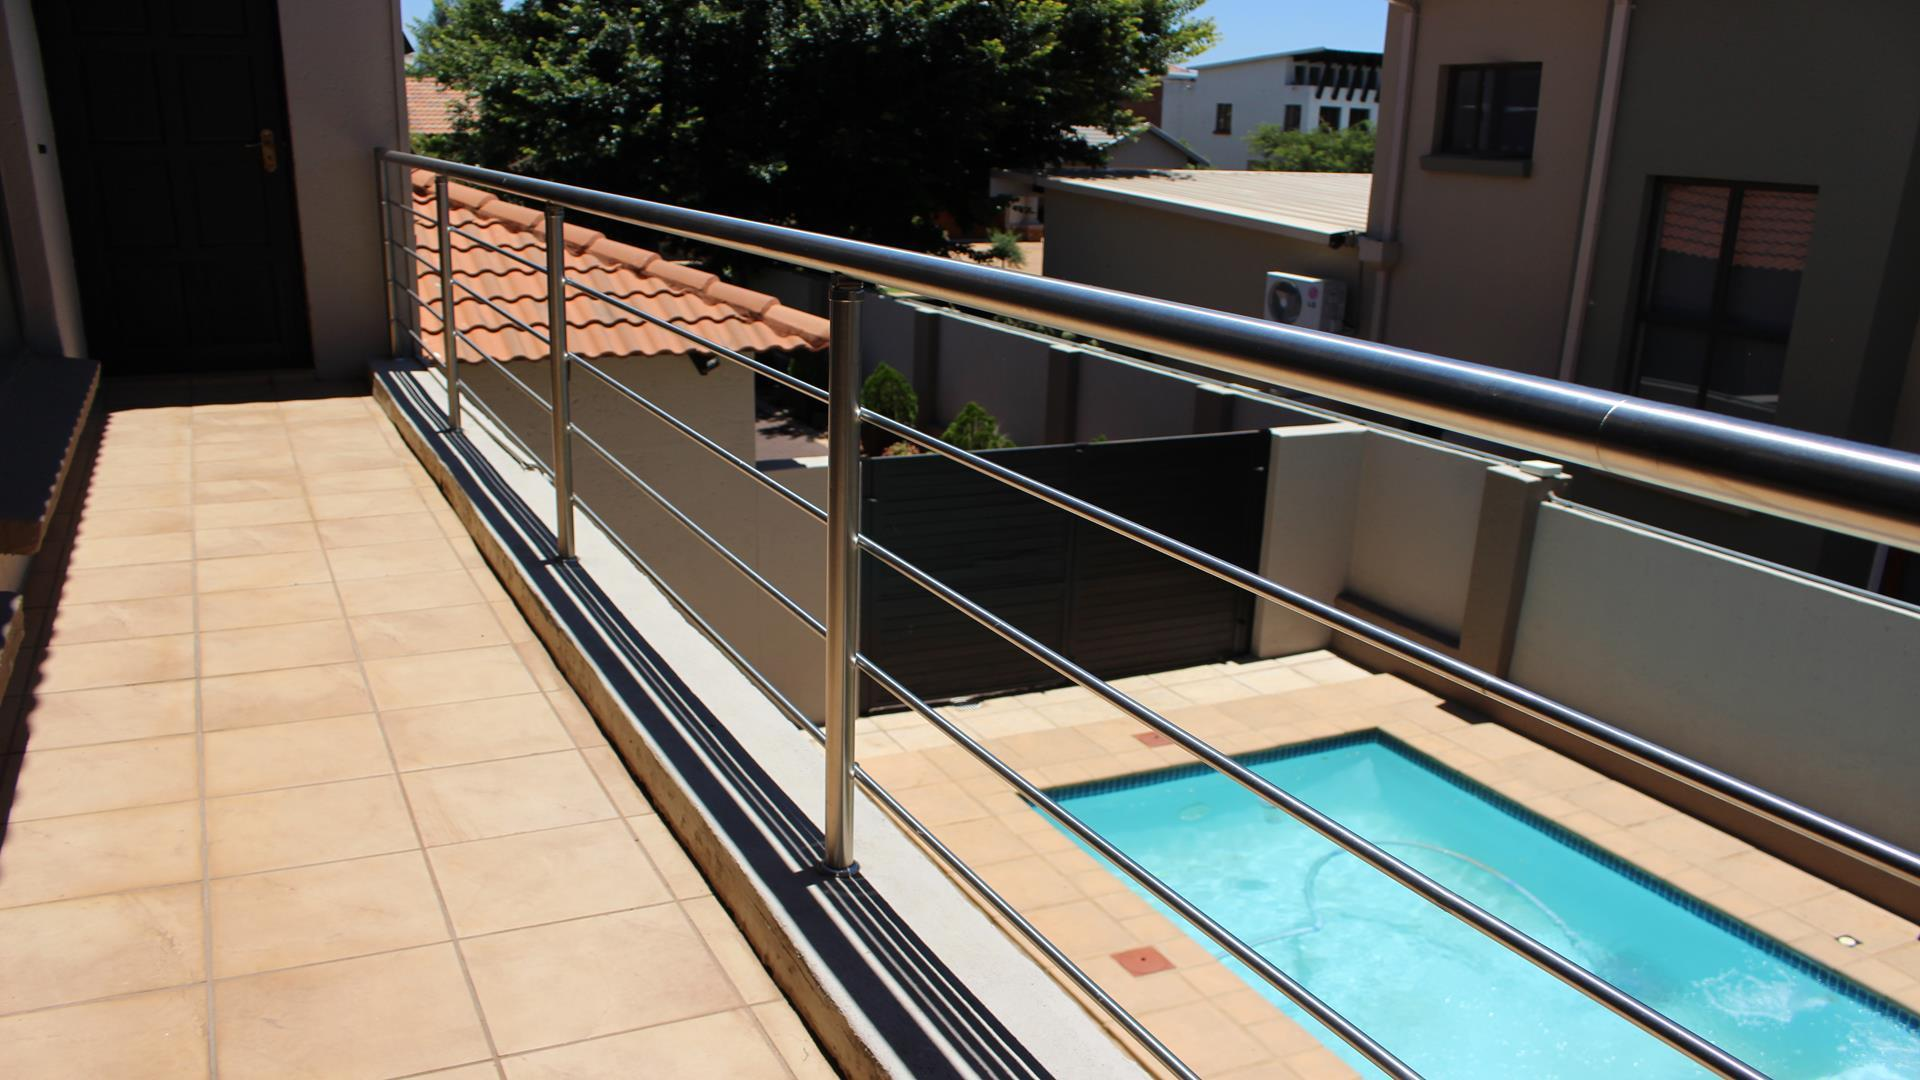 Raslouw Manor property for sale. Ref No: 13435098. Picture no 29